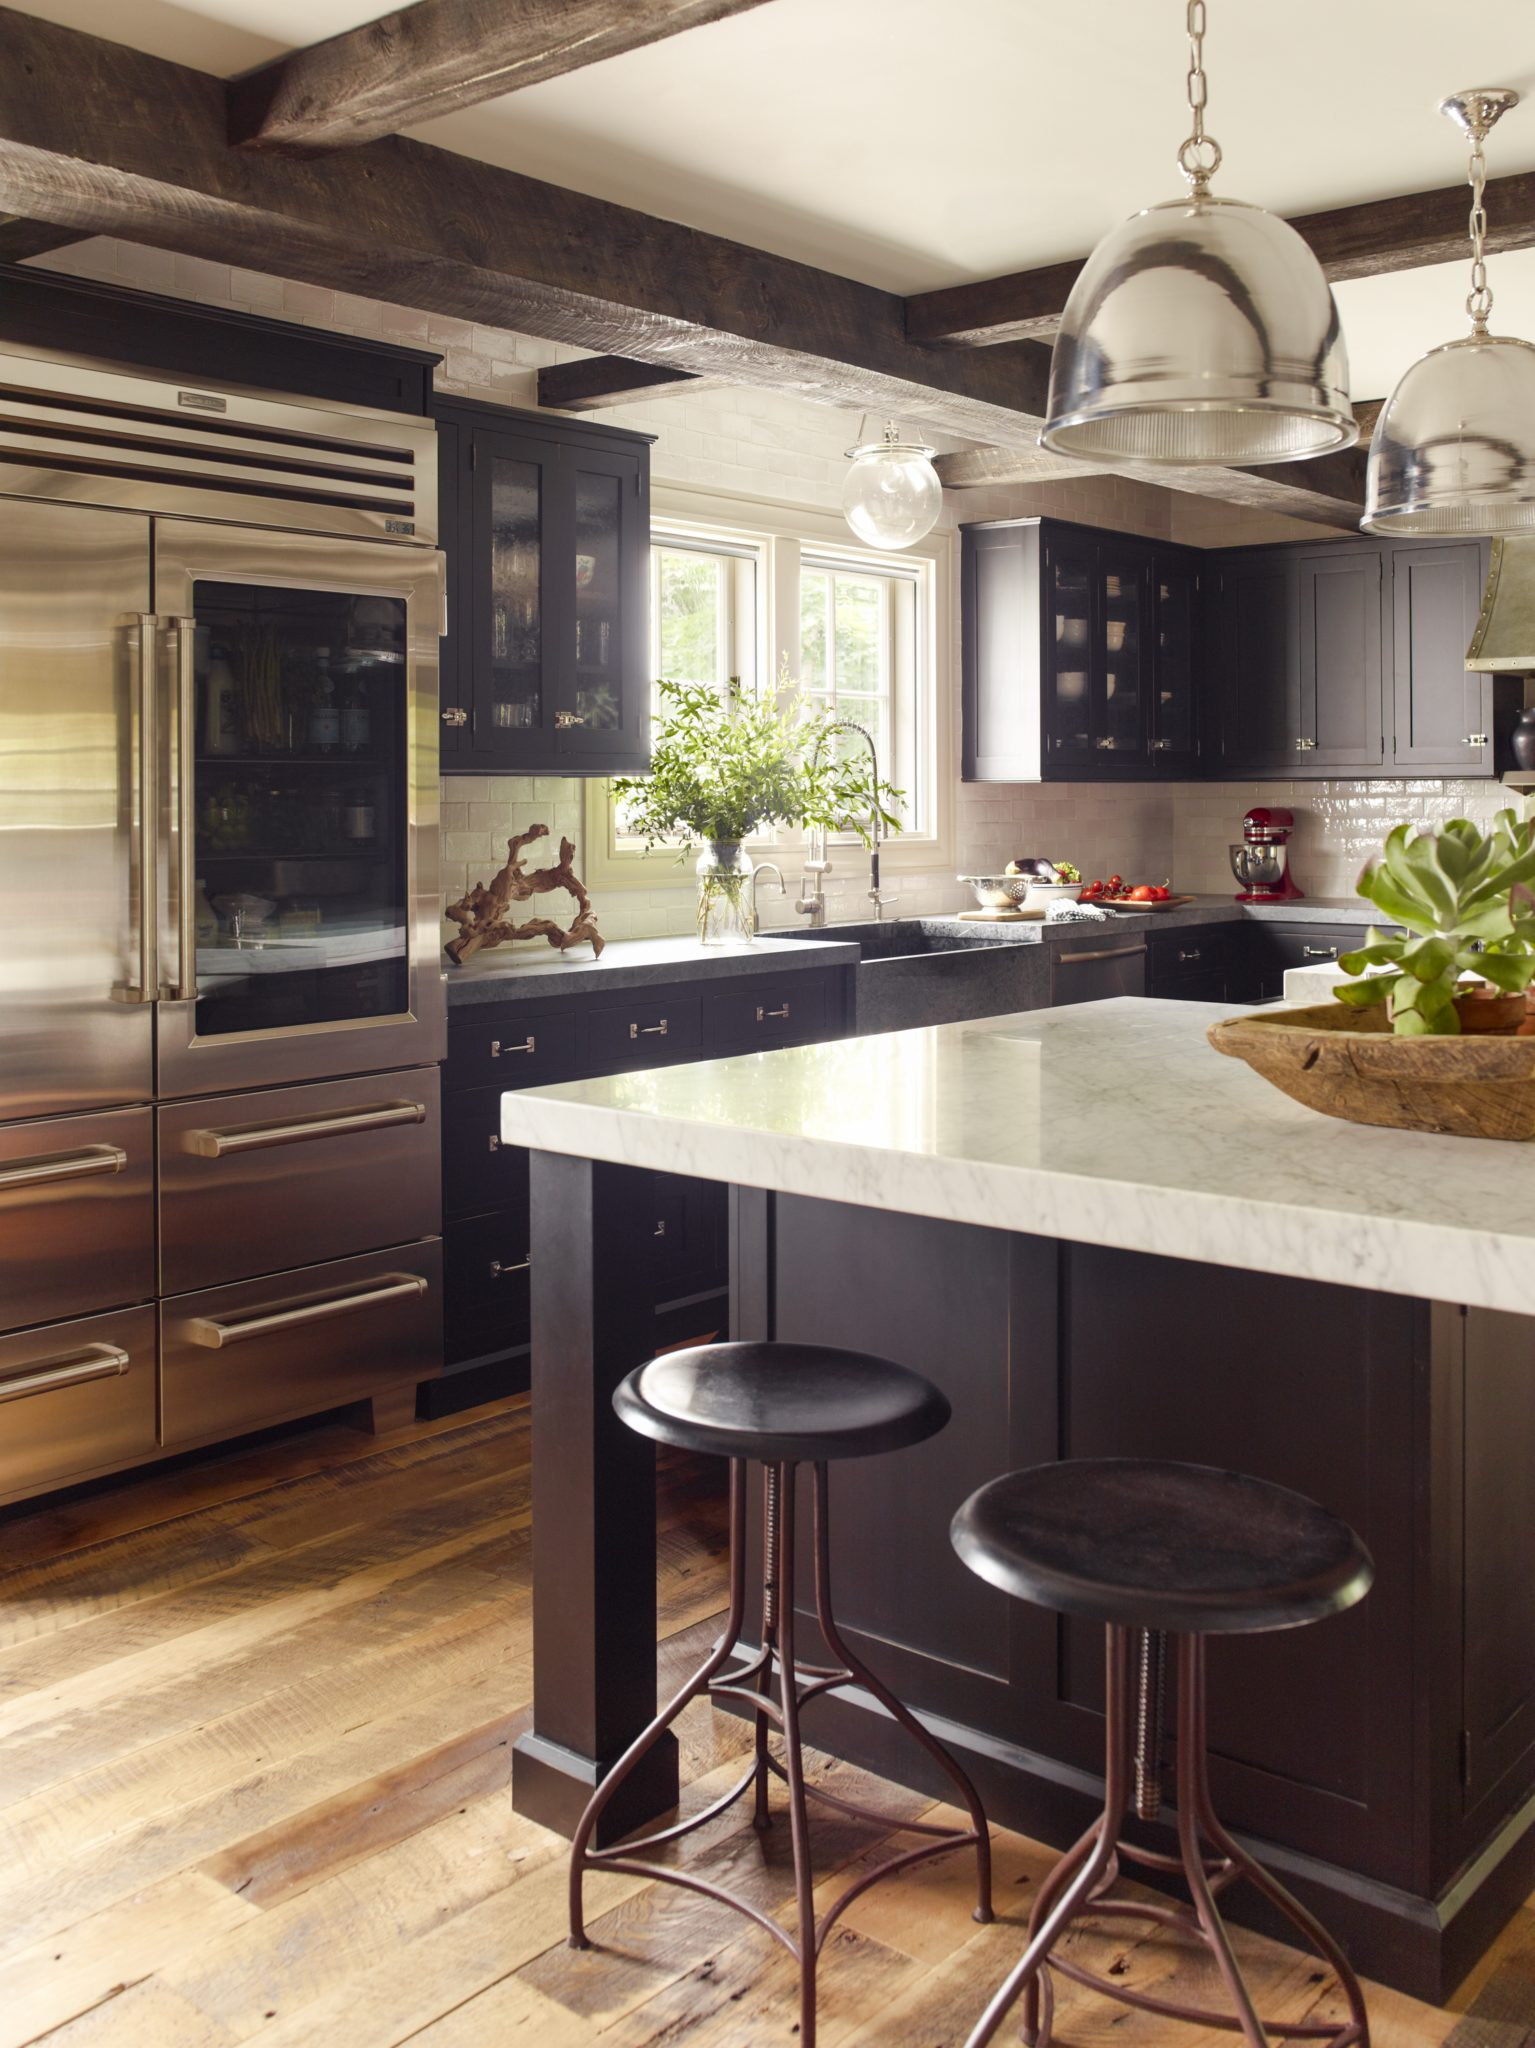 Interior design by Dunn andTighe Interiors